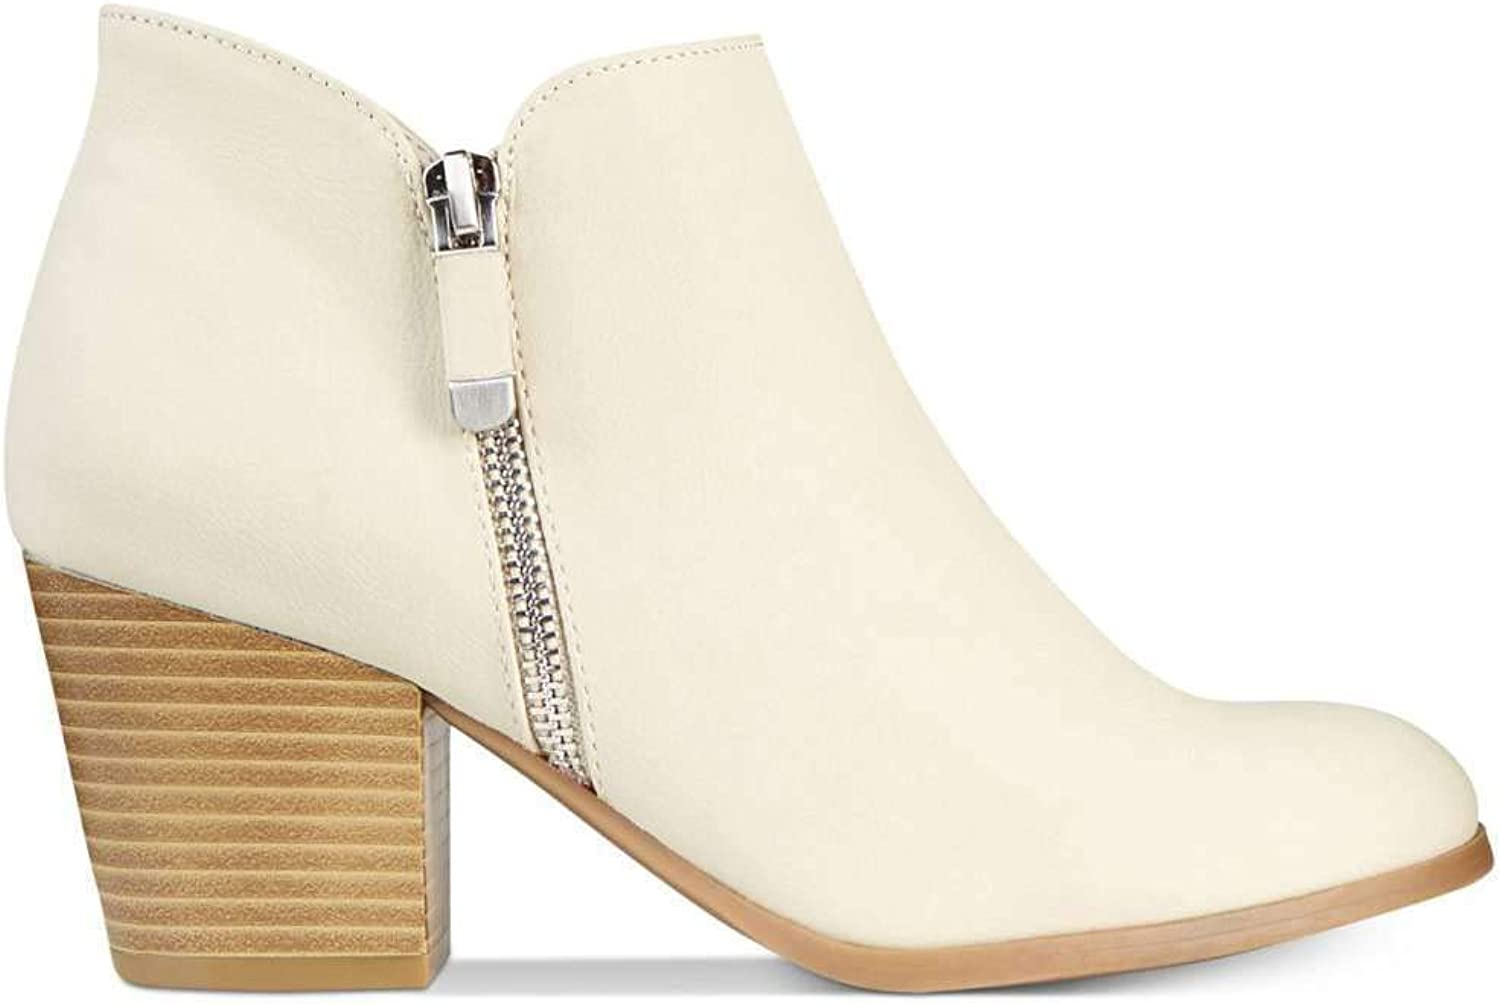 Style & Co. Womens Assroma Closed Toe Ankle Fashion Boots